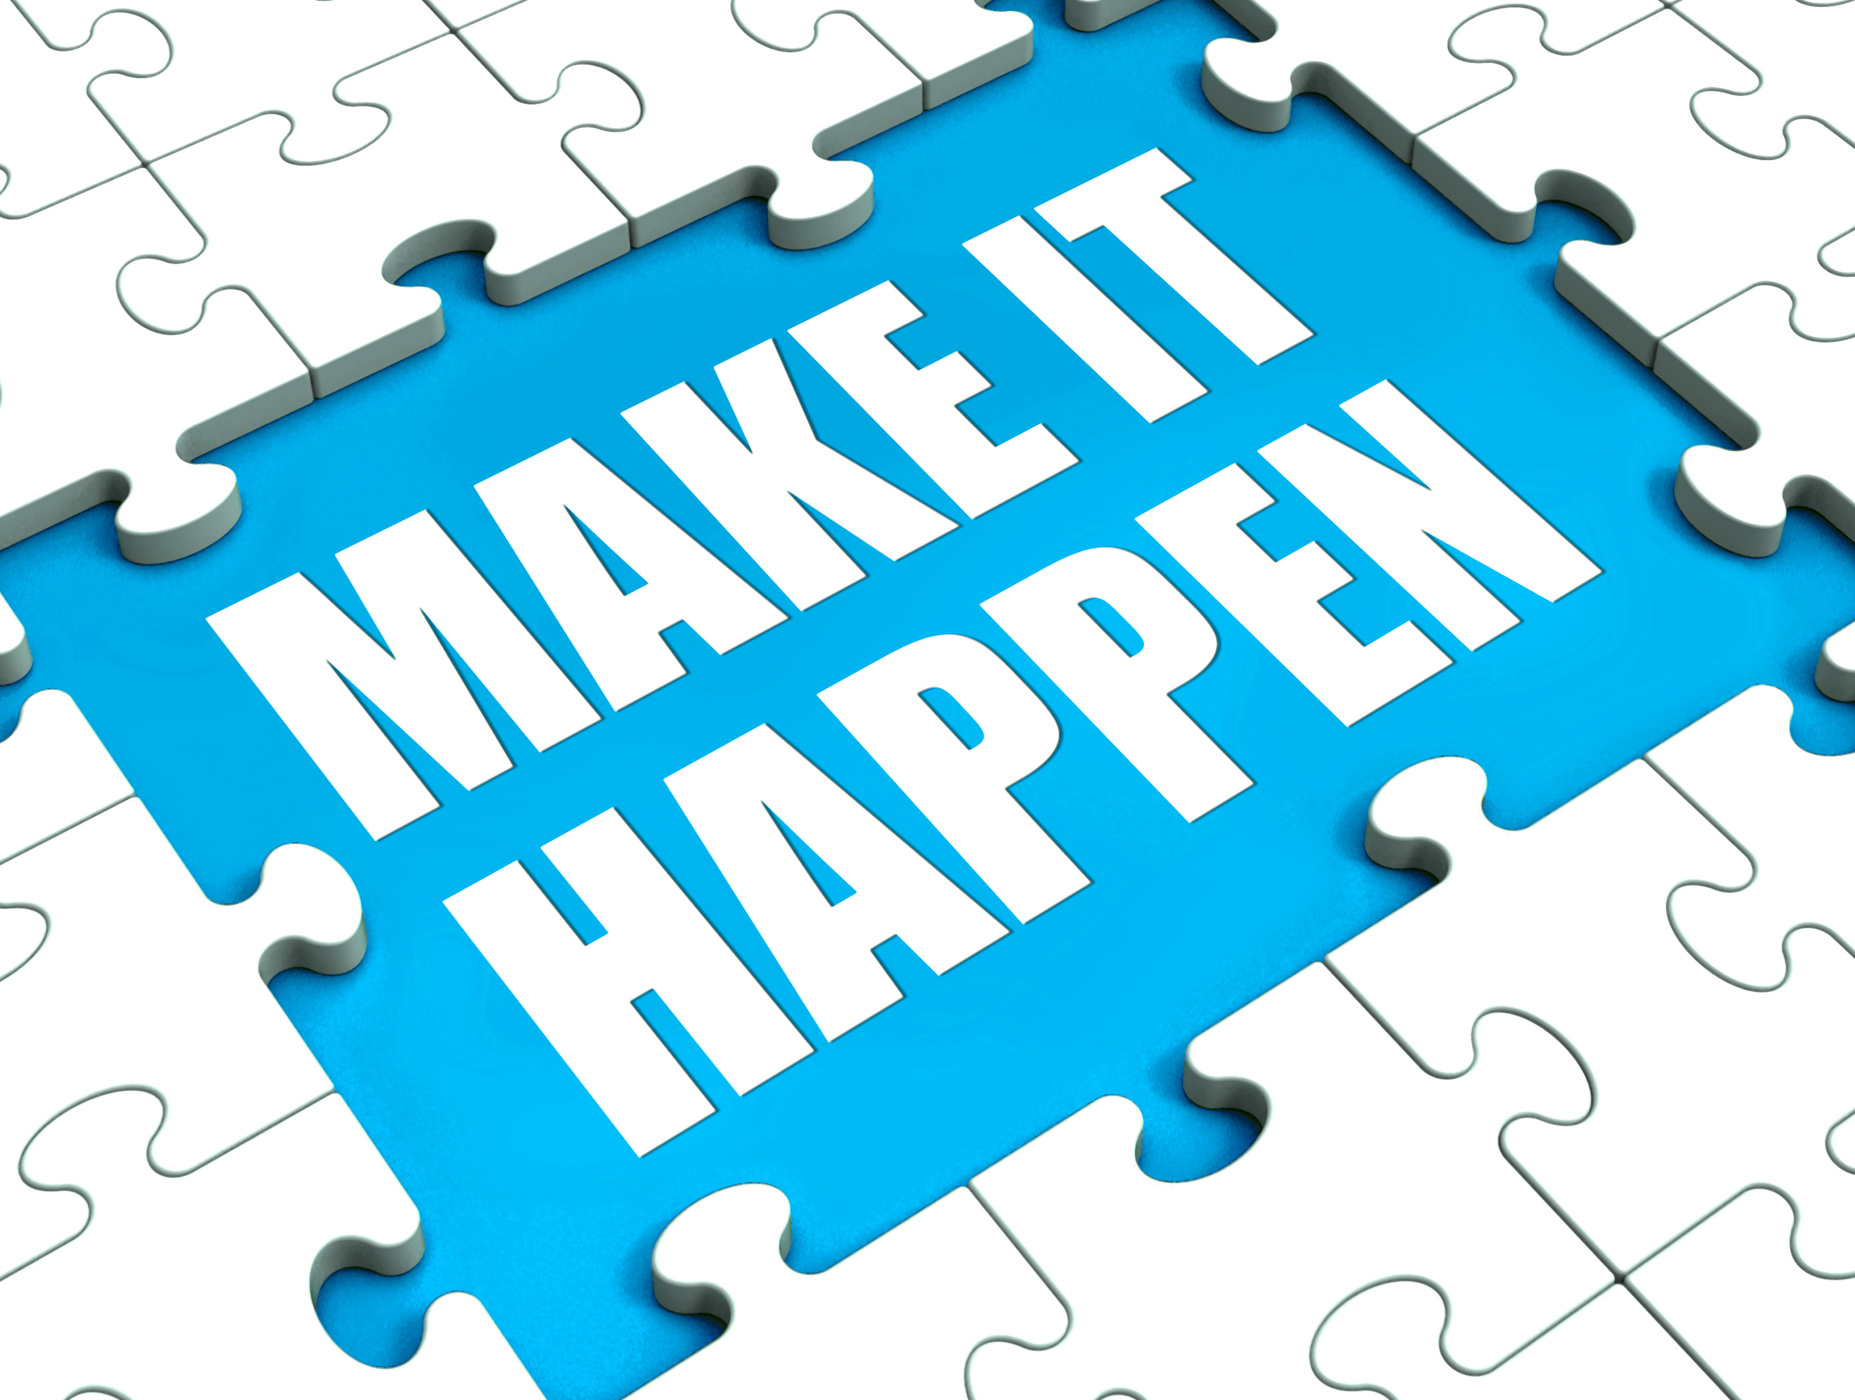 Make it happen puzzle shows motivation management and action photo